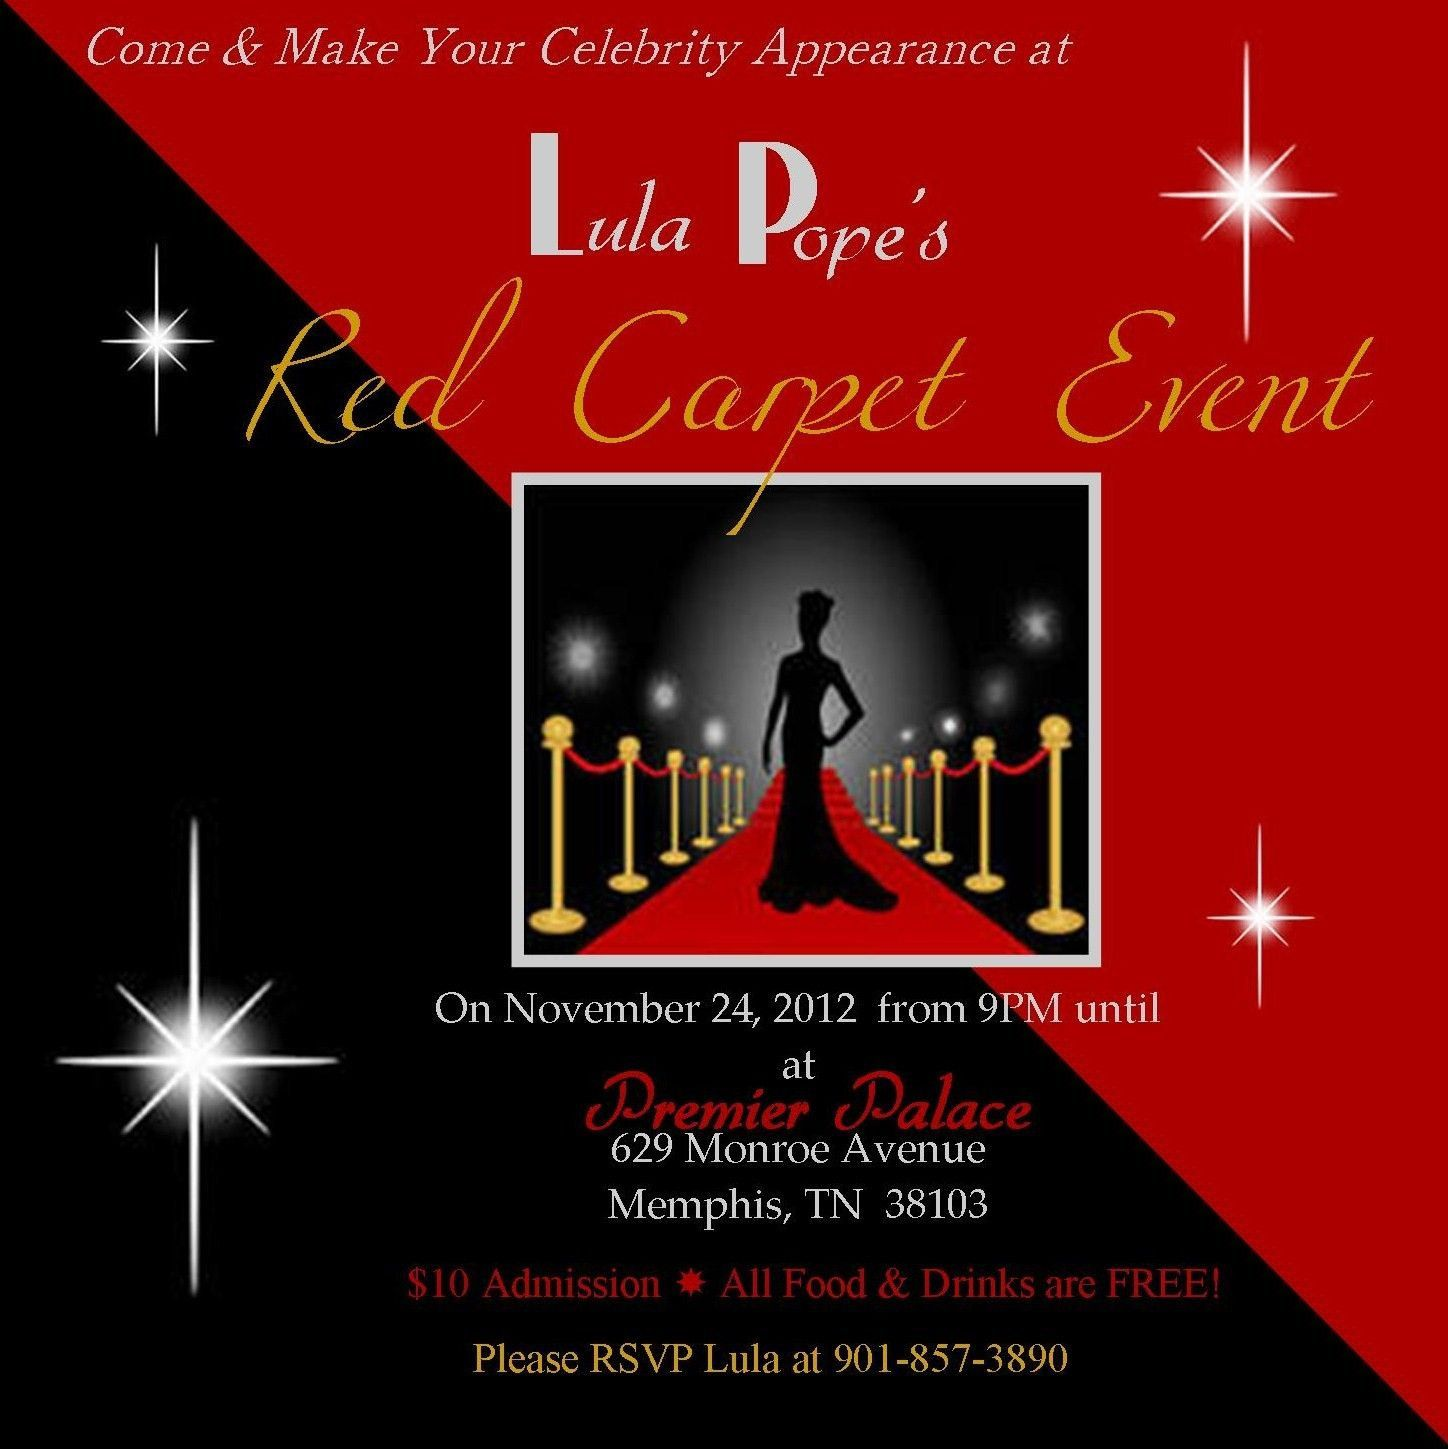 005 Archaicawful Red Carpet Invitation Template Free Highest Clarity  DownloadFull